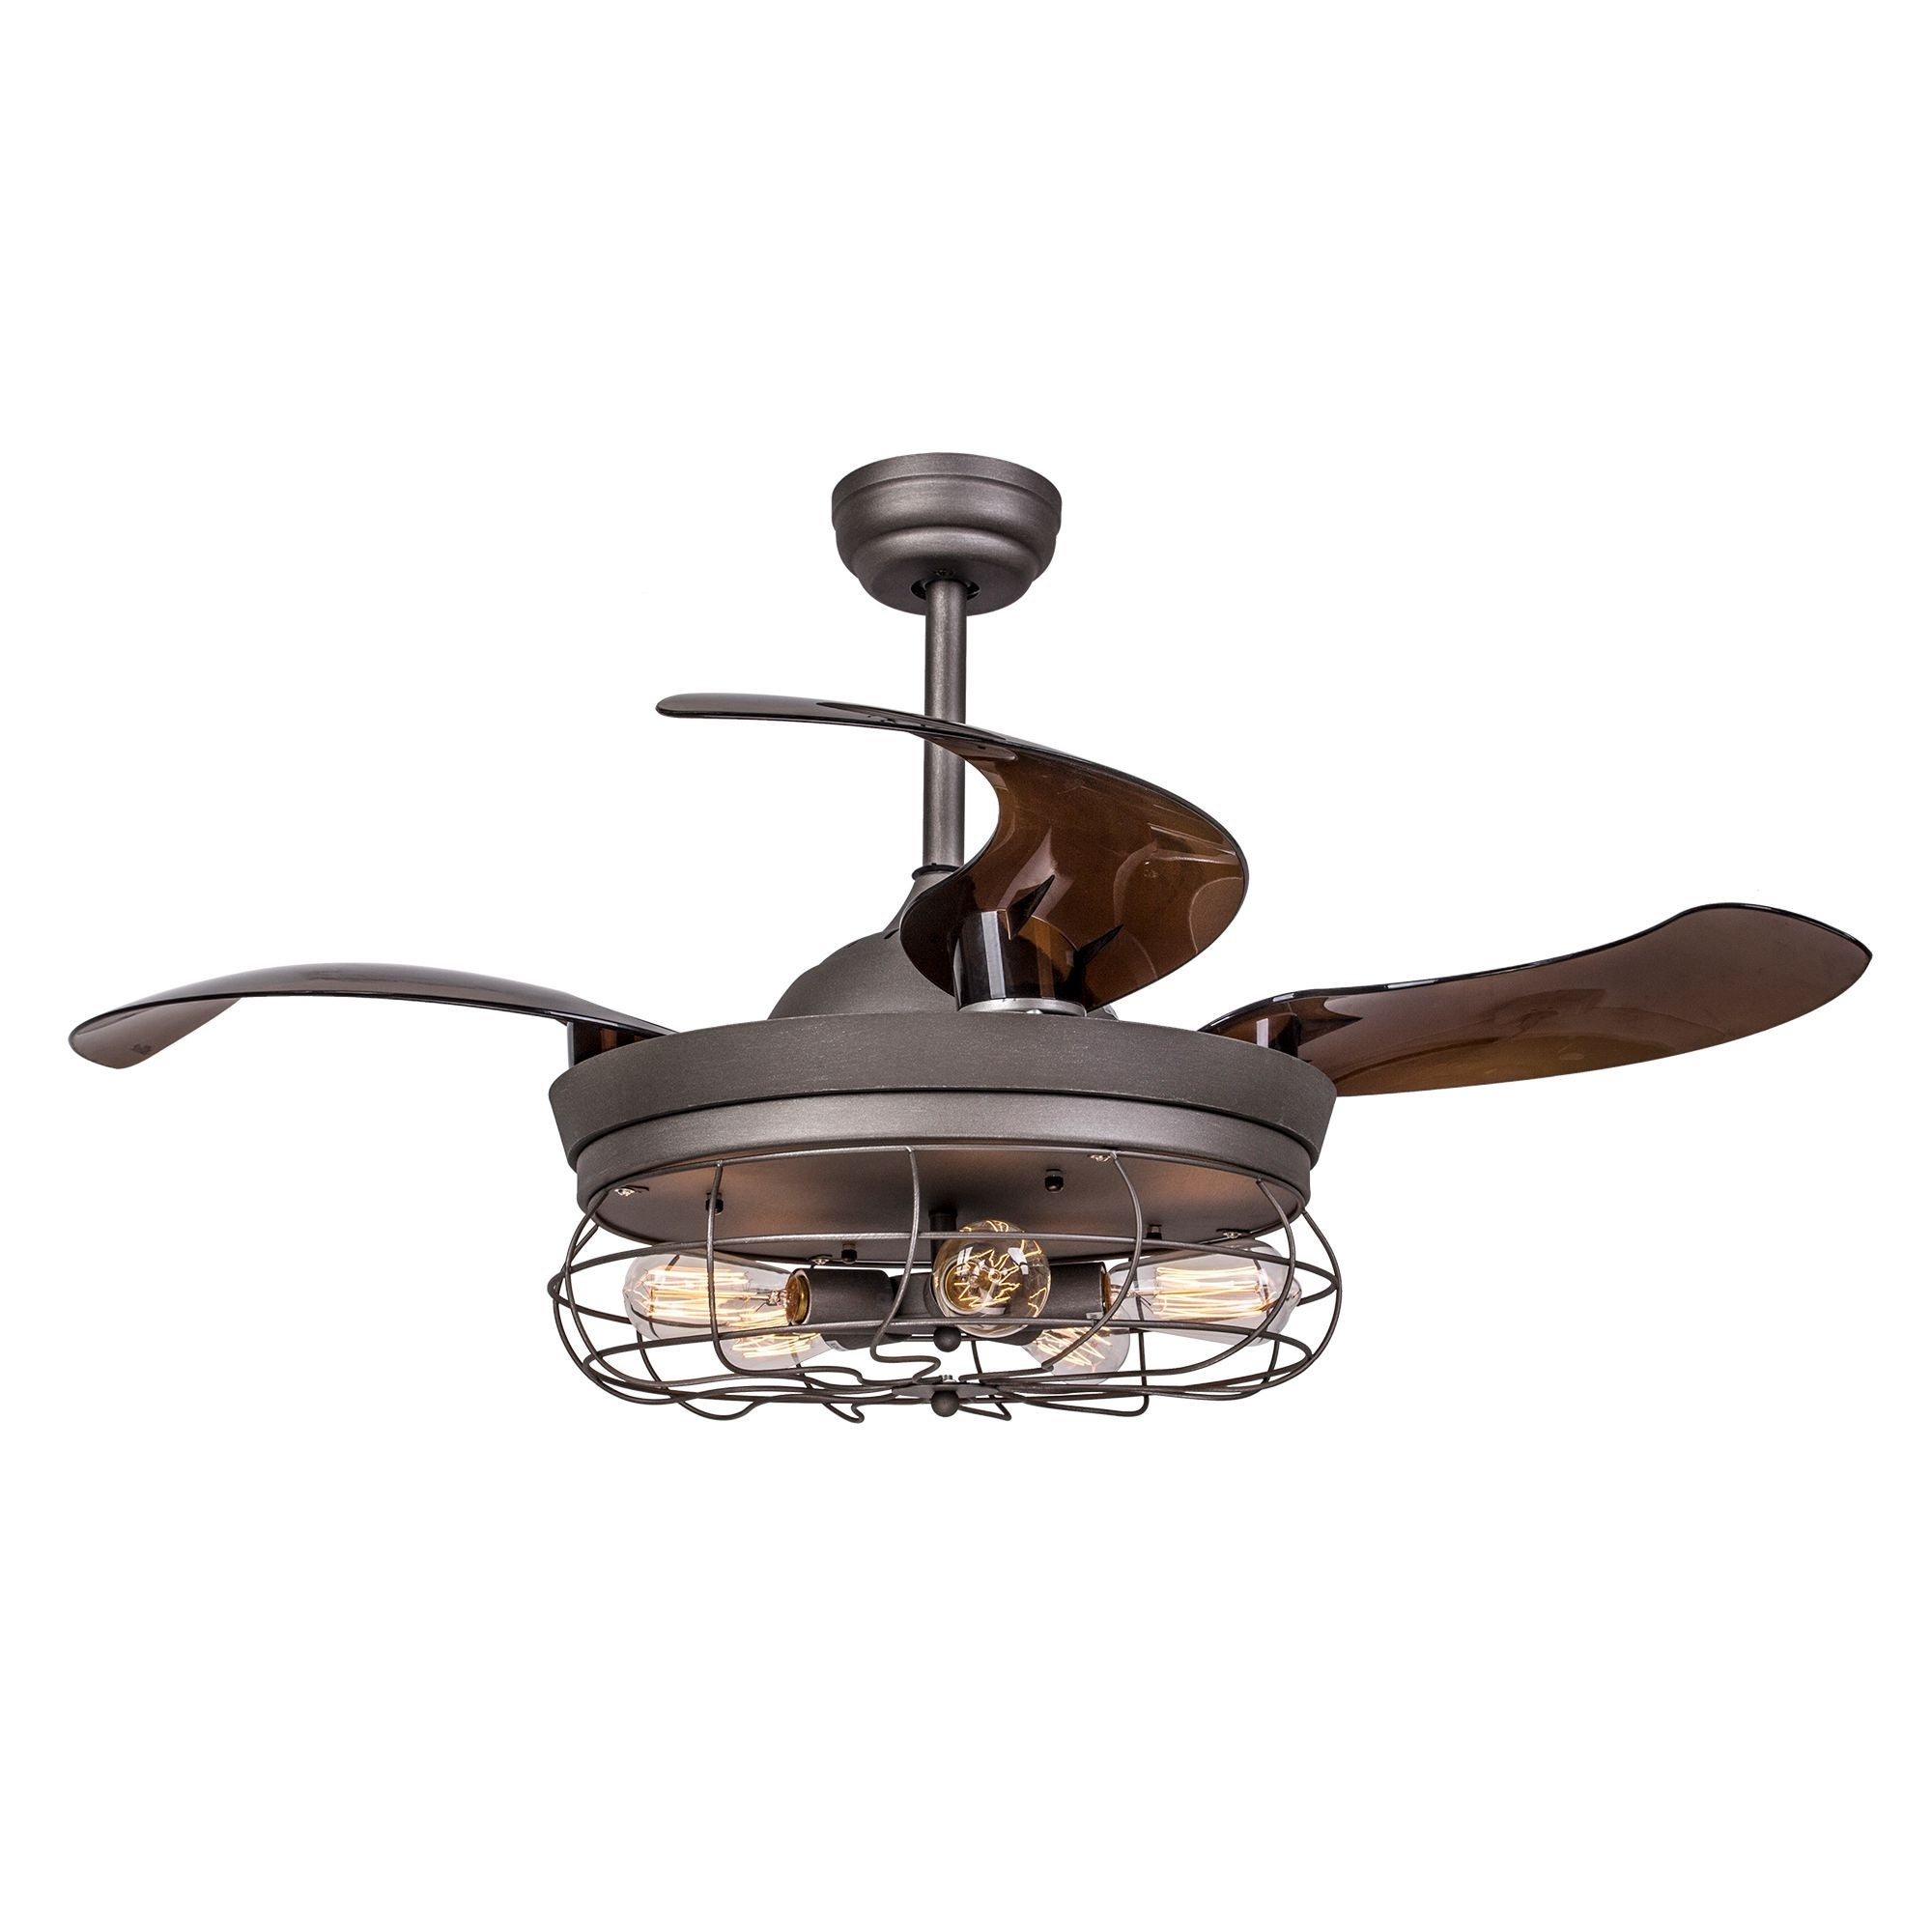 Shop rustic 46 inch retractable blades ceiling fan with 5 lights free shipping today overstock com 18915968